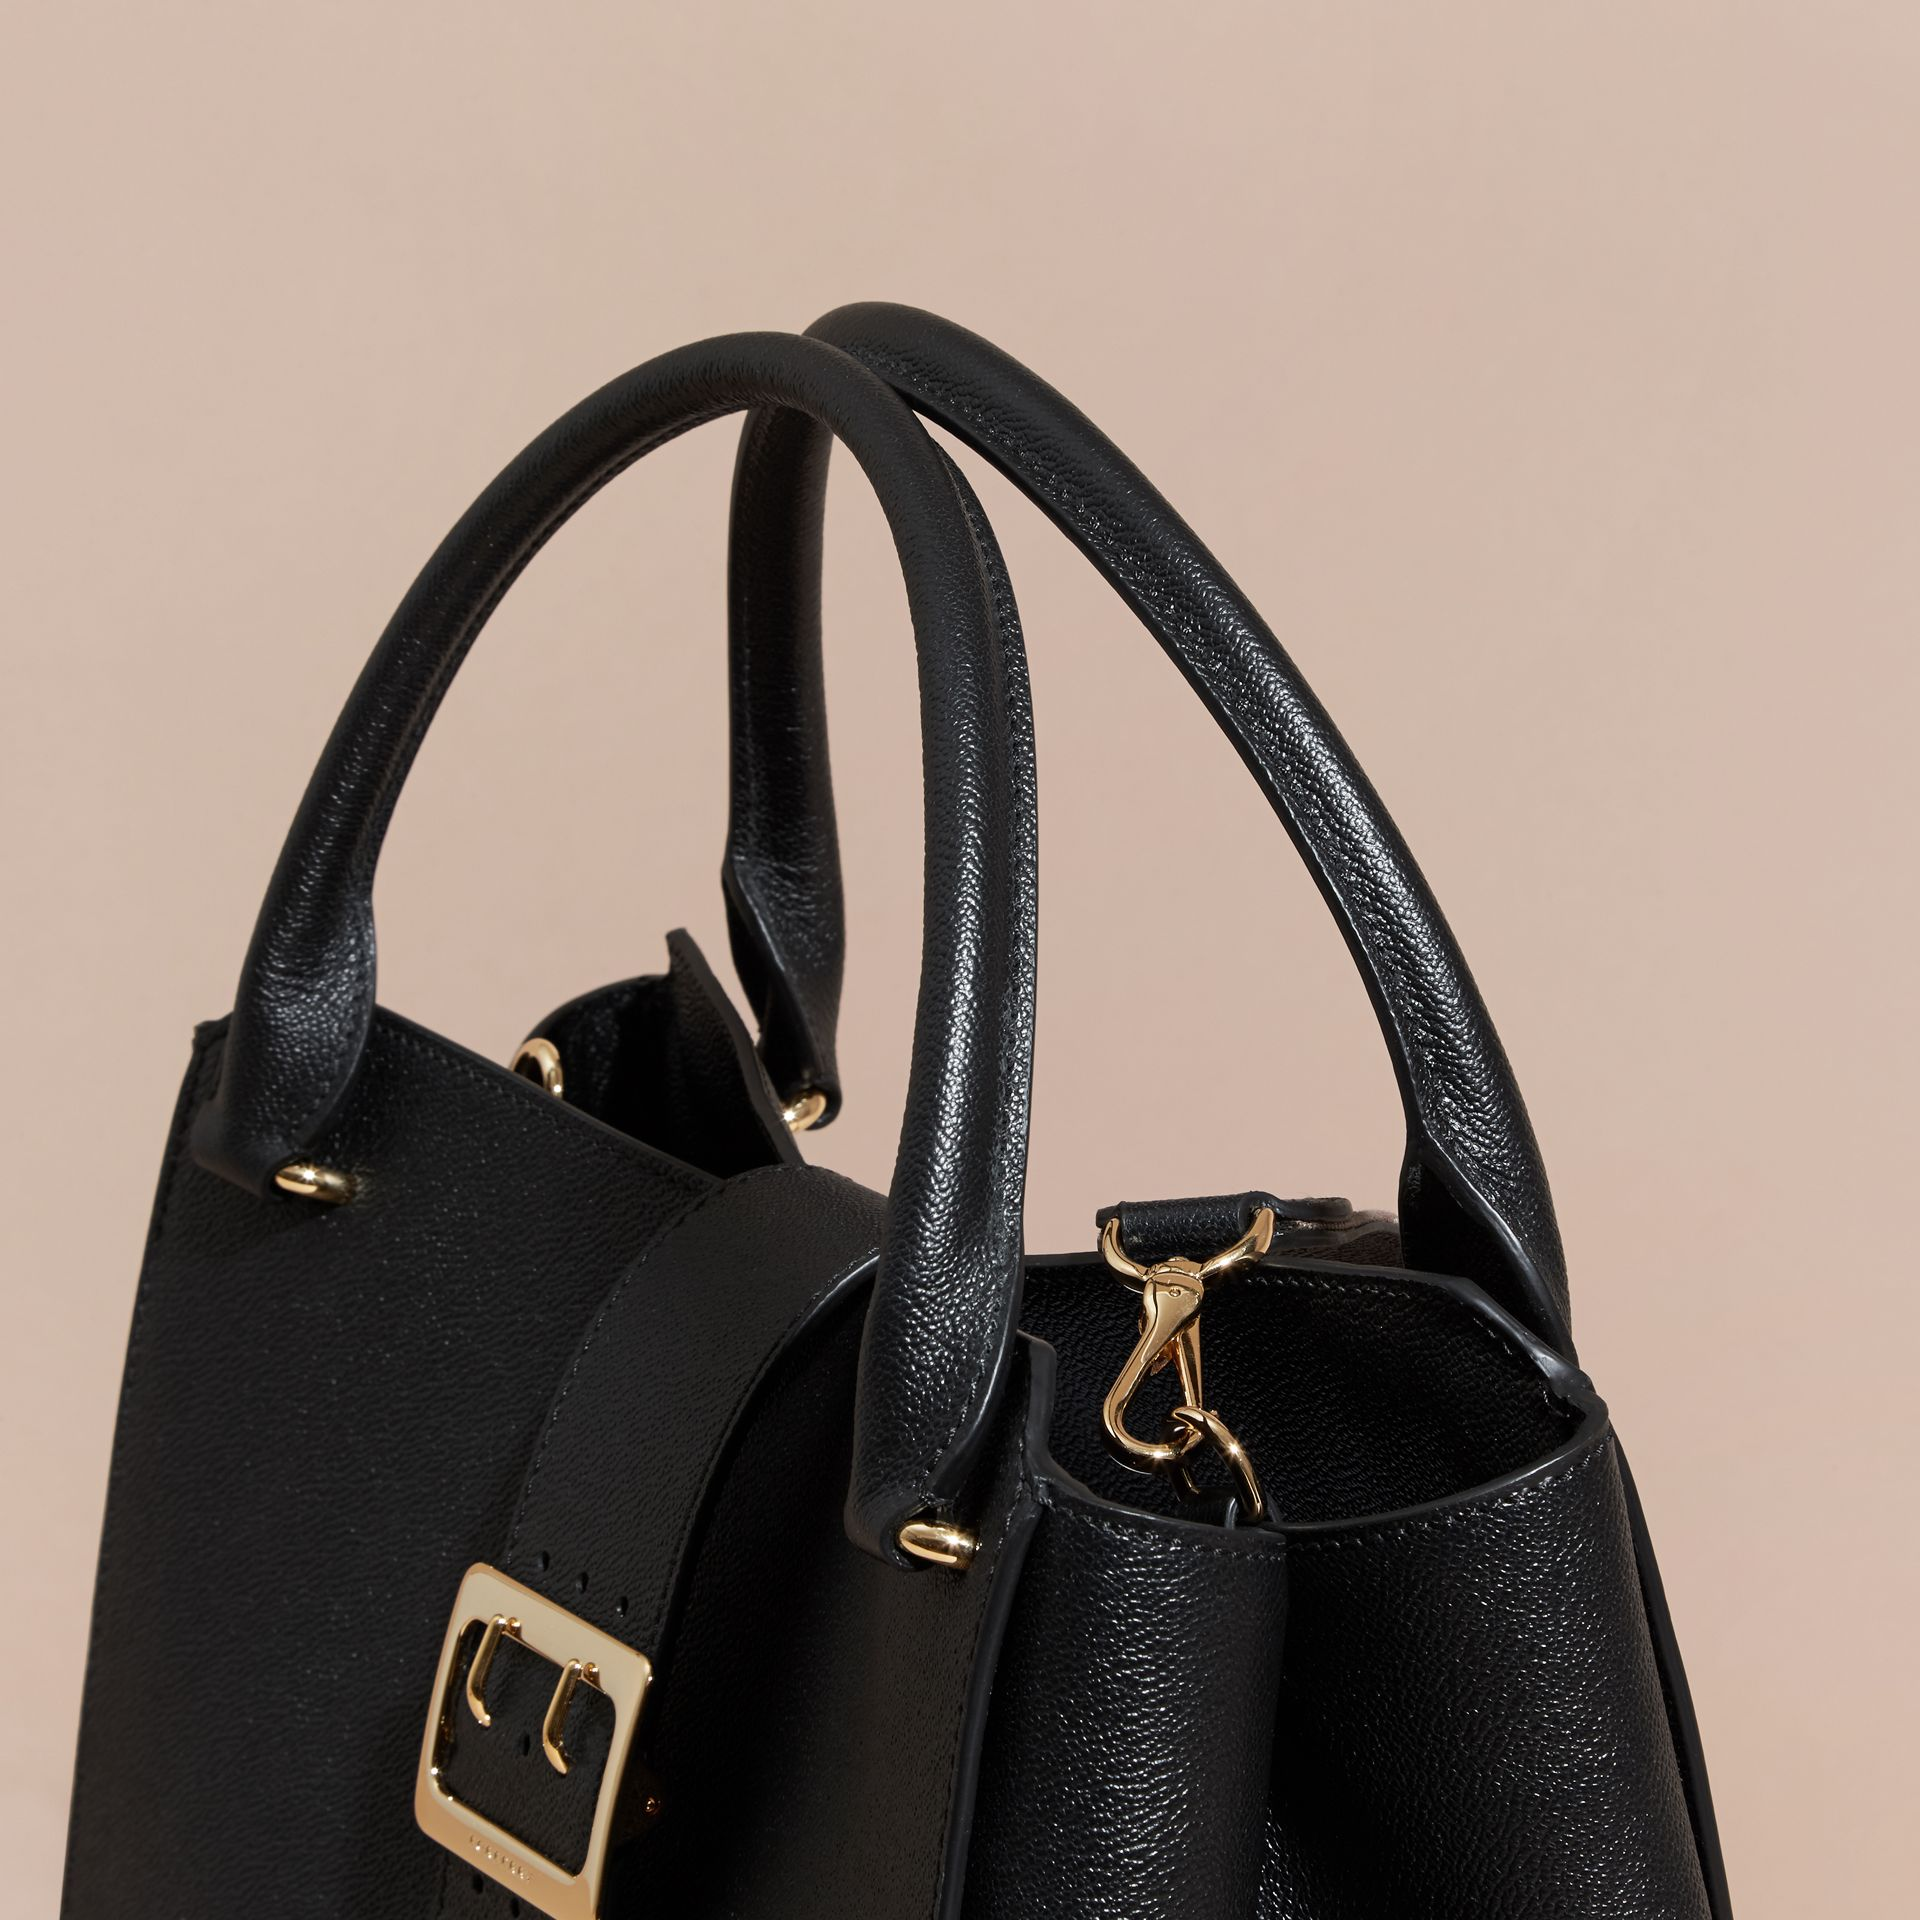 Black The Large Buckle Tote in Grainy Leather Black - gallery image 2